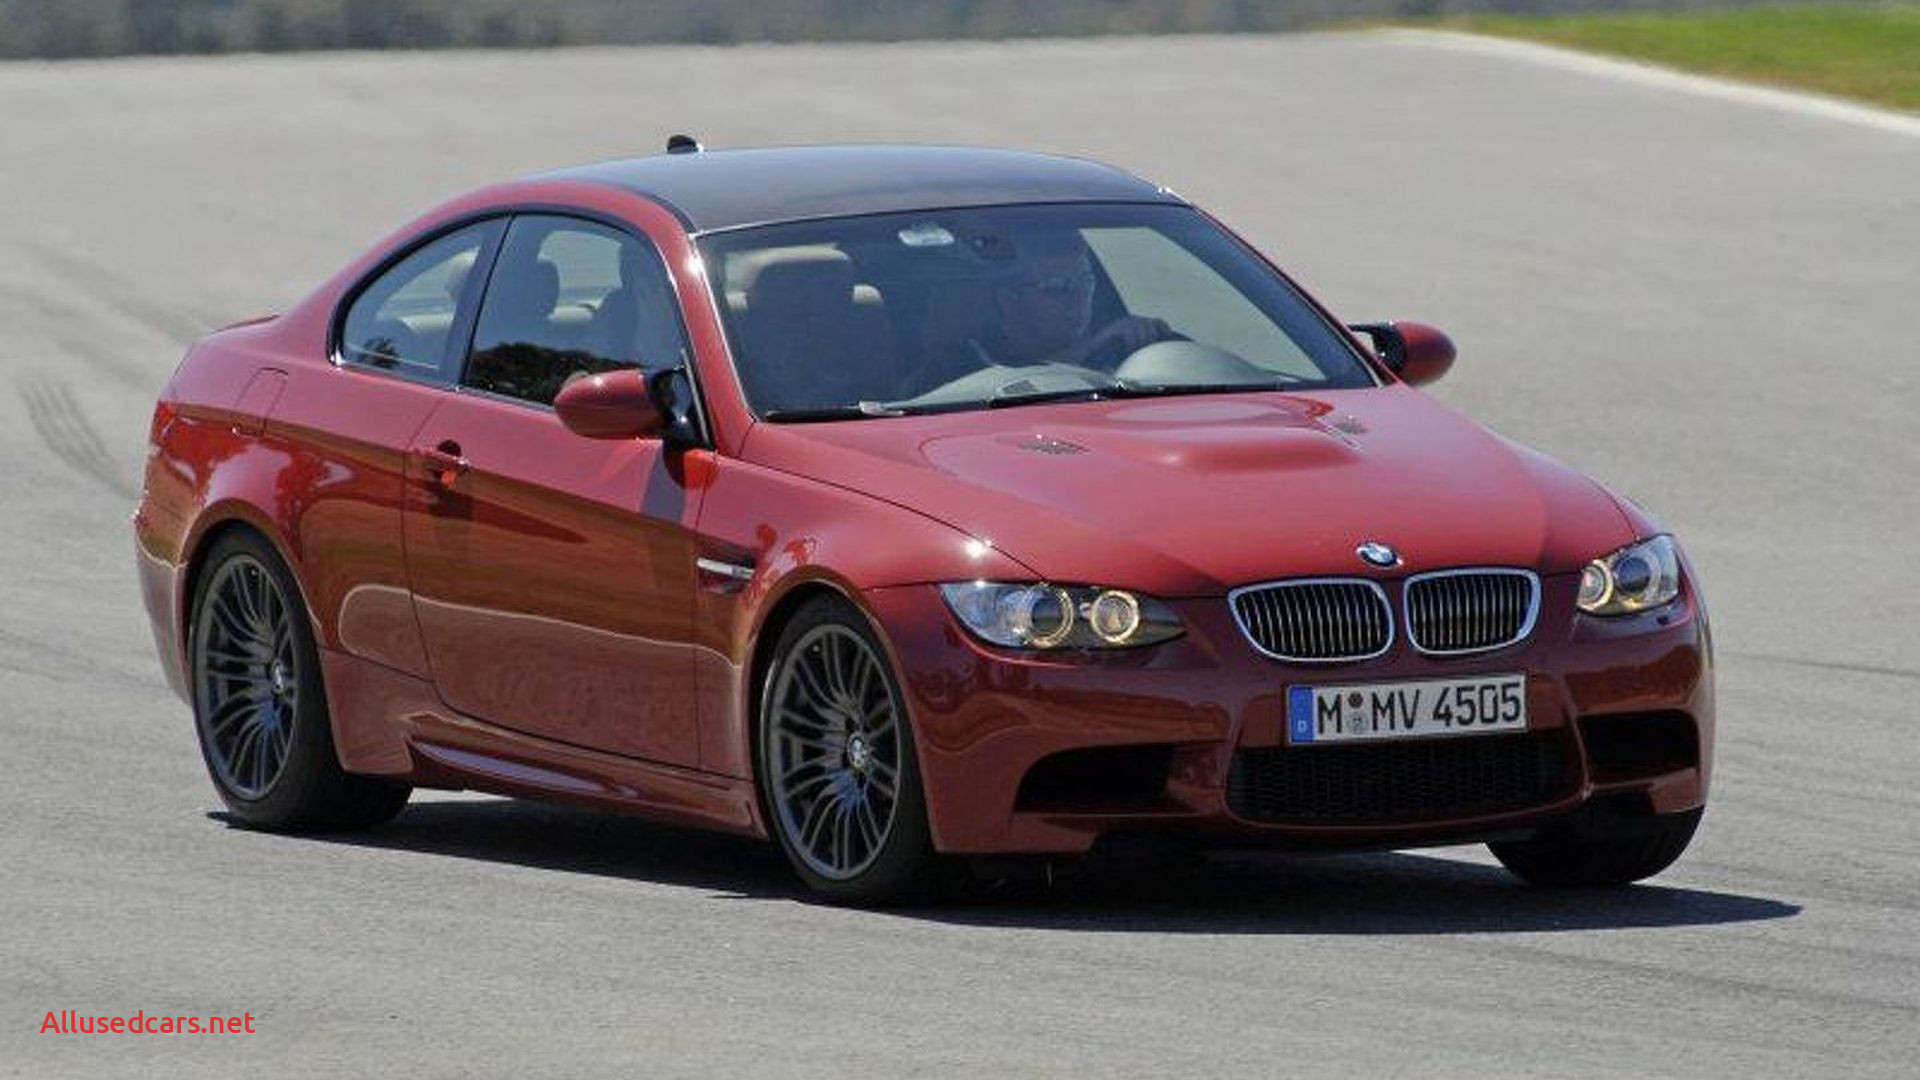 Bmw 135i for Sale Inspirational New Bmw M3 Sales Set to Exceed 100 000